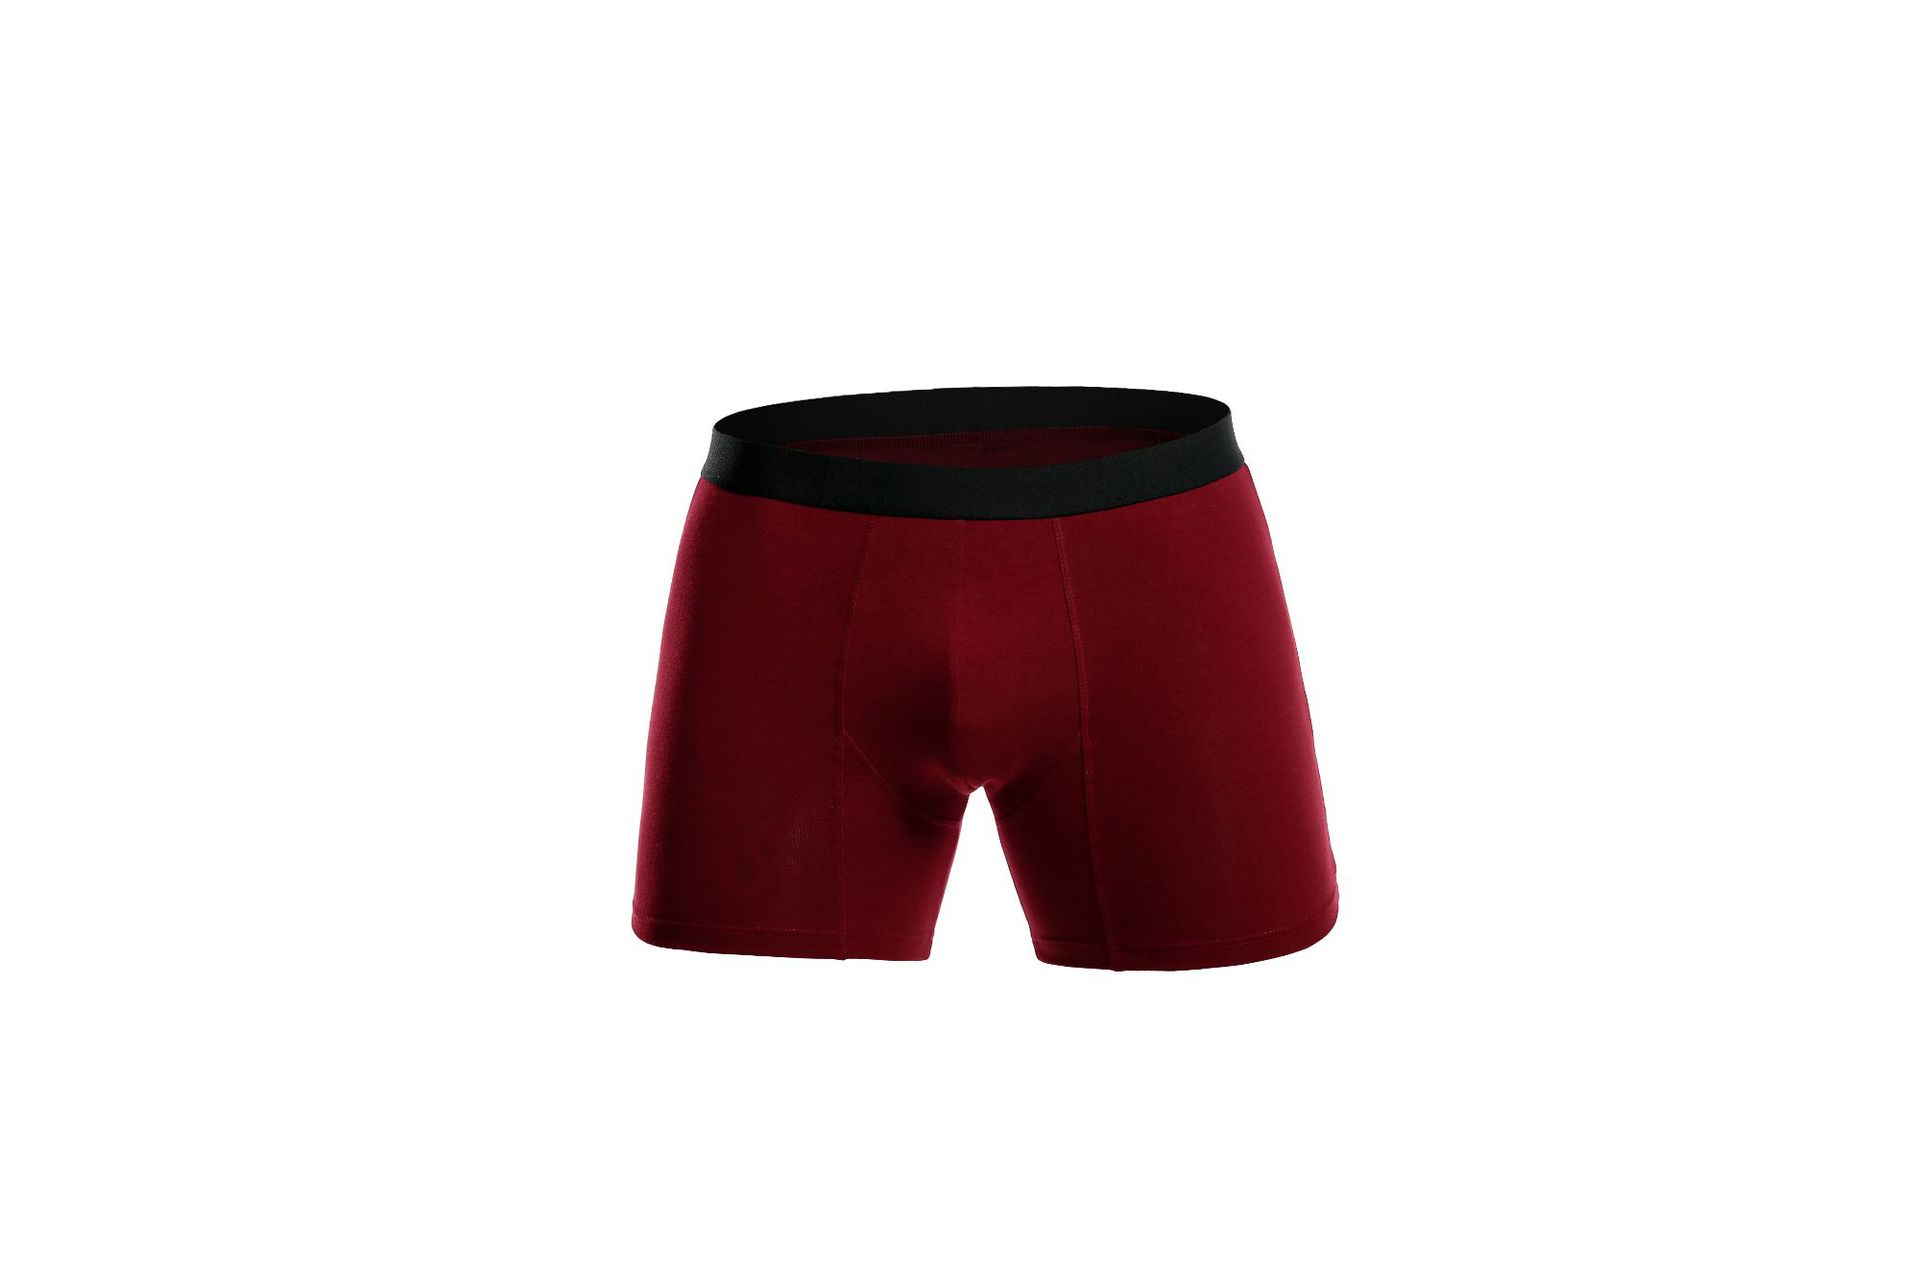 2020 plus long custom underwear men boxer briefs sexy men underwear